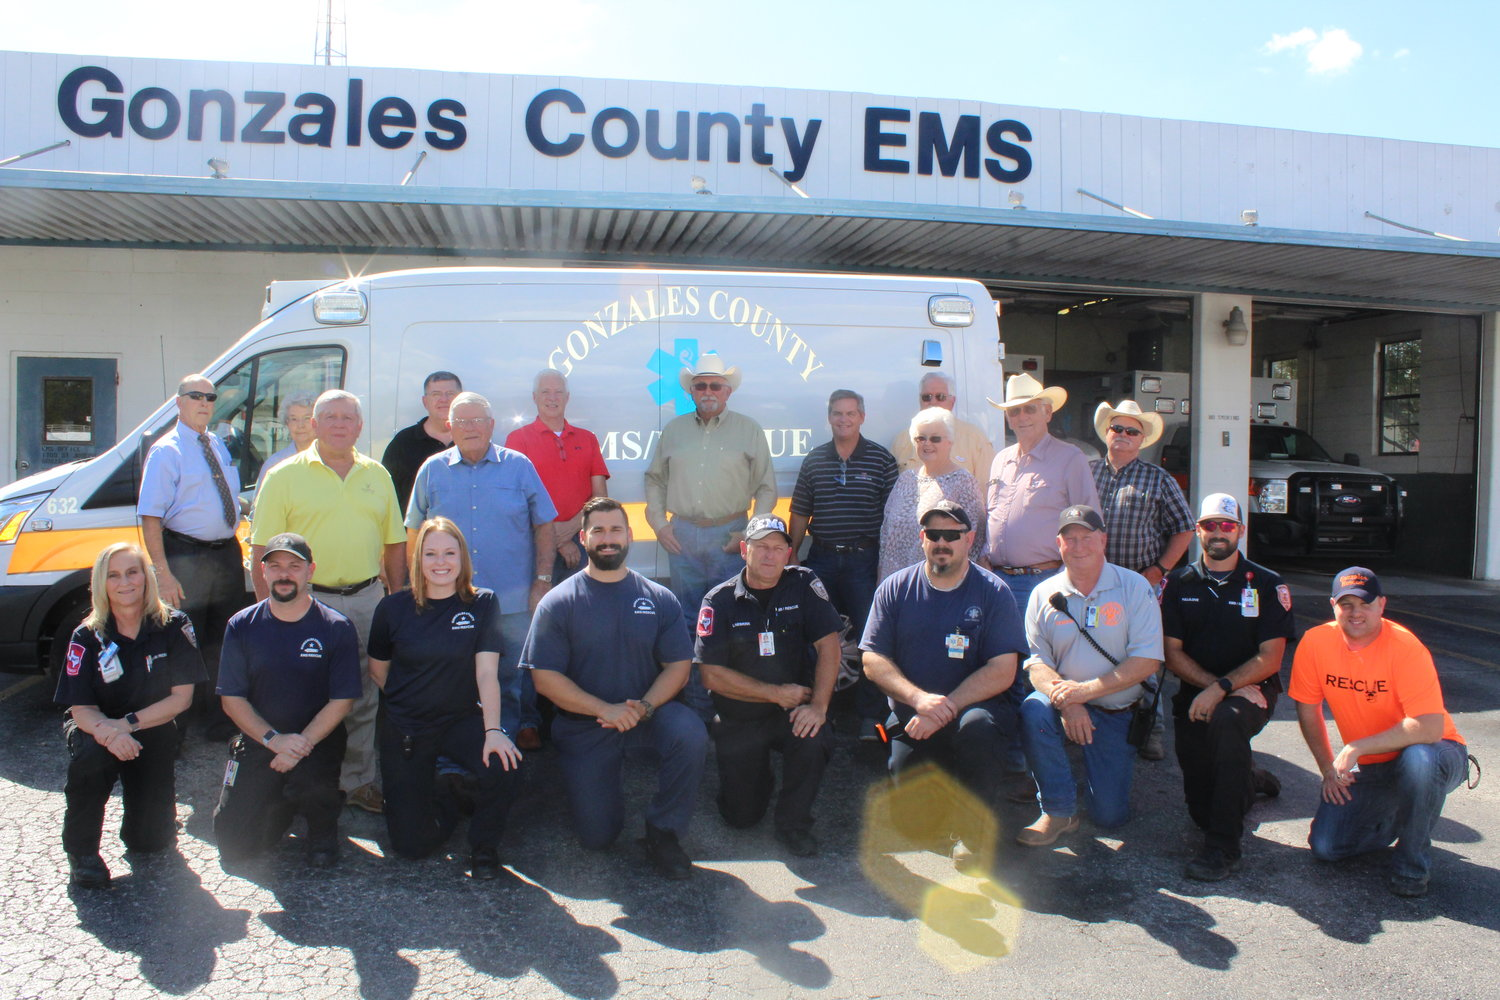 The Gonzales County Health Foundation recently donated a new 2018 transport ambulance ($66,250) and $20,000 towards new communication equipment to the Gonzales County Emergency Medical Services(EMS) and Rescue teams. Pictured in front of the new ambulance are members of EMS, Rescue and Gonzales County Health Foundation board members.